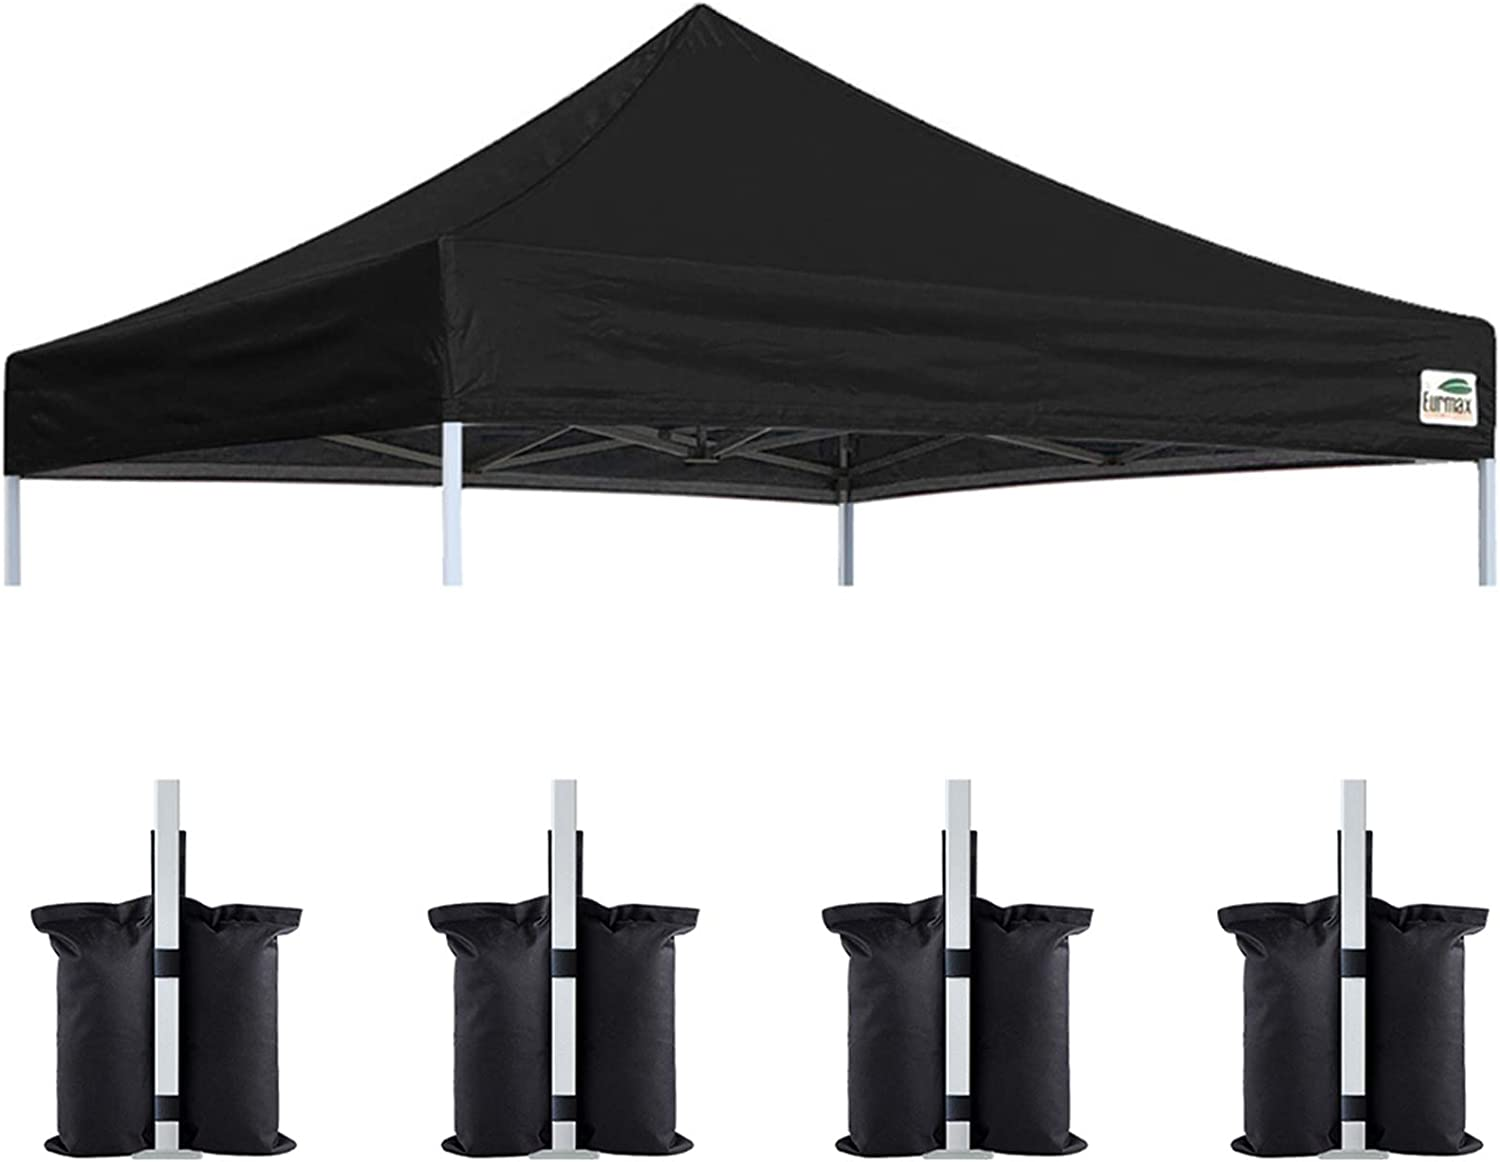 Eurmax New 10x10 Pop Up Canopy Replacement Canopy Tent Top Cover, Instant Ez Canopy Top Cover ONLY, Choose 30 Colors,Bonus 4PC Pack Canopy Weight Bag (Black)